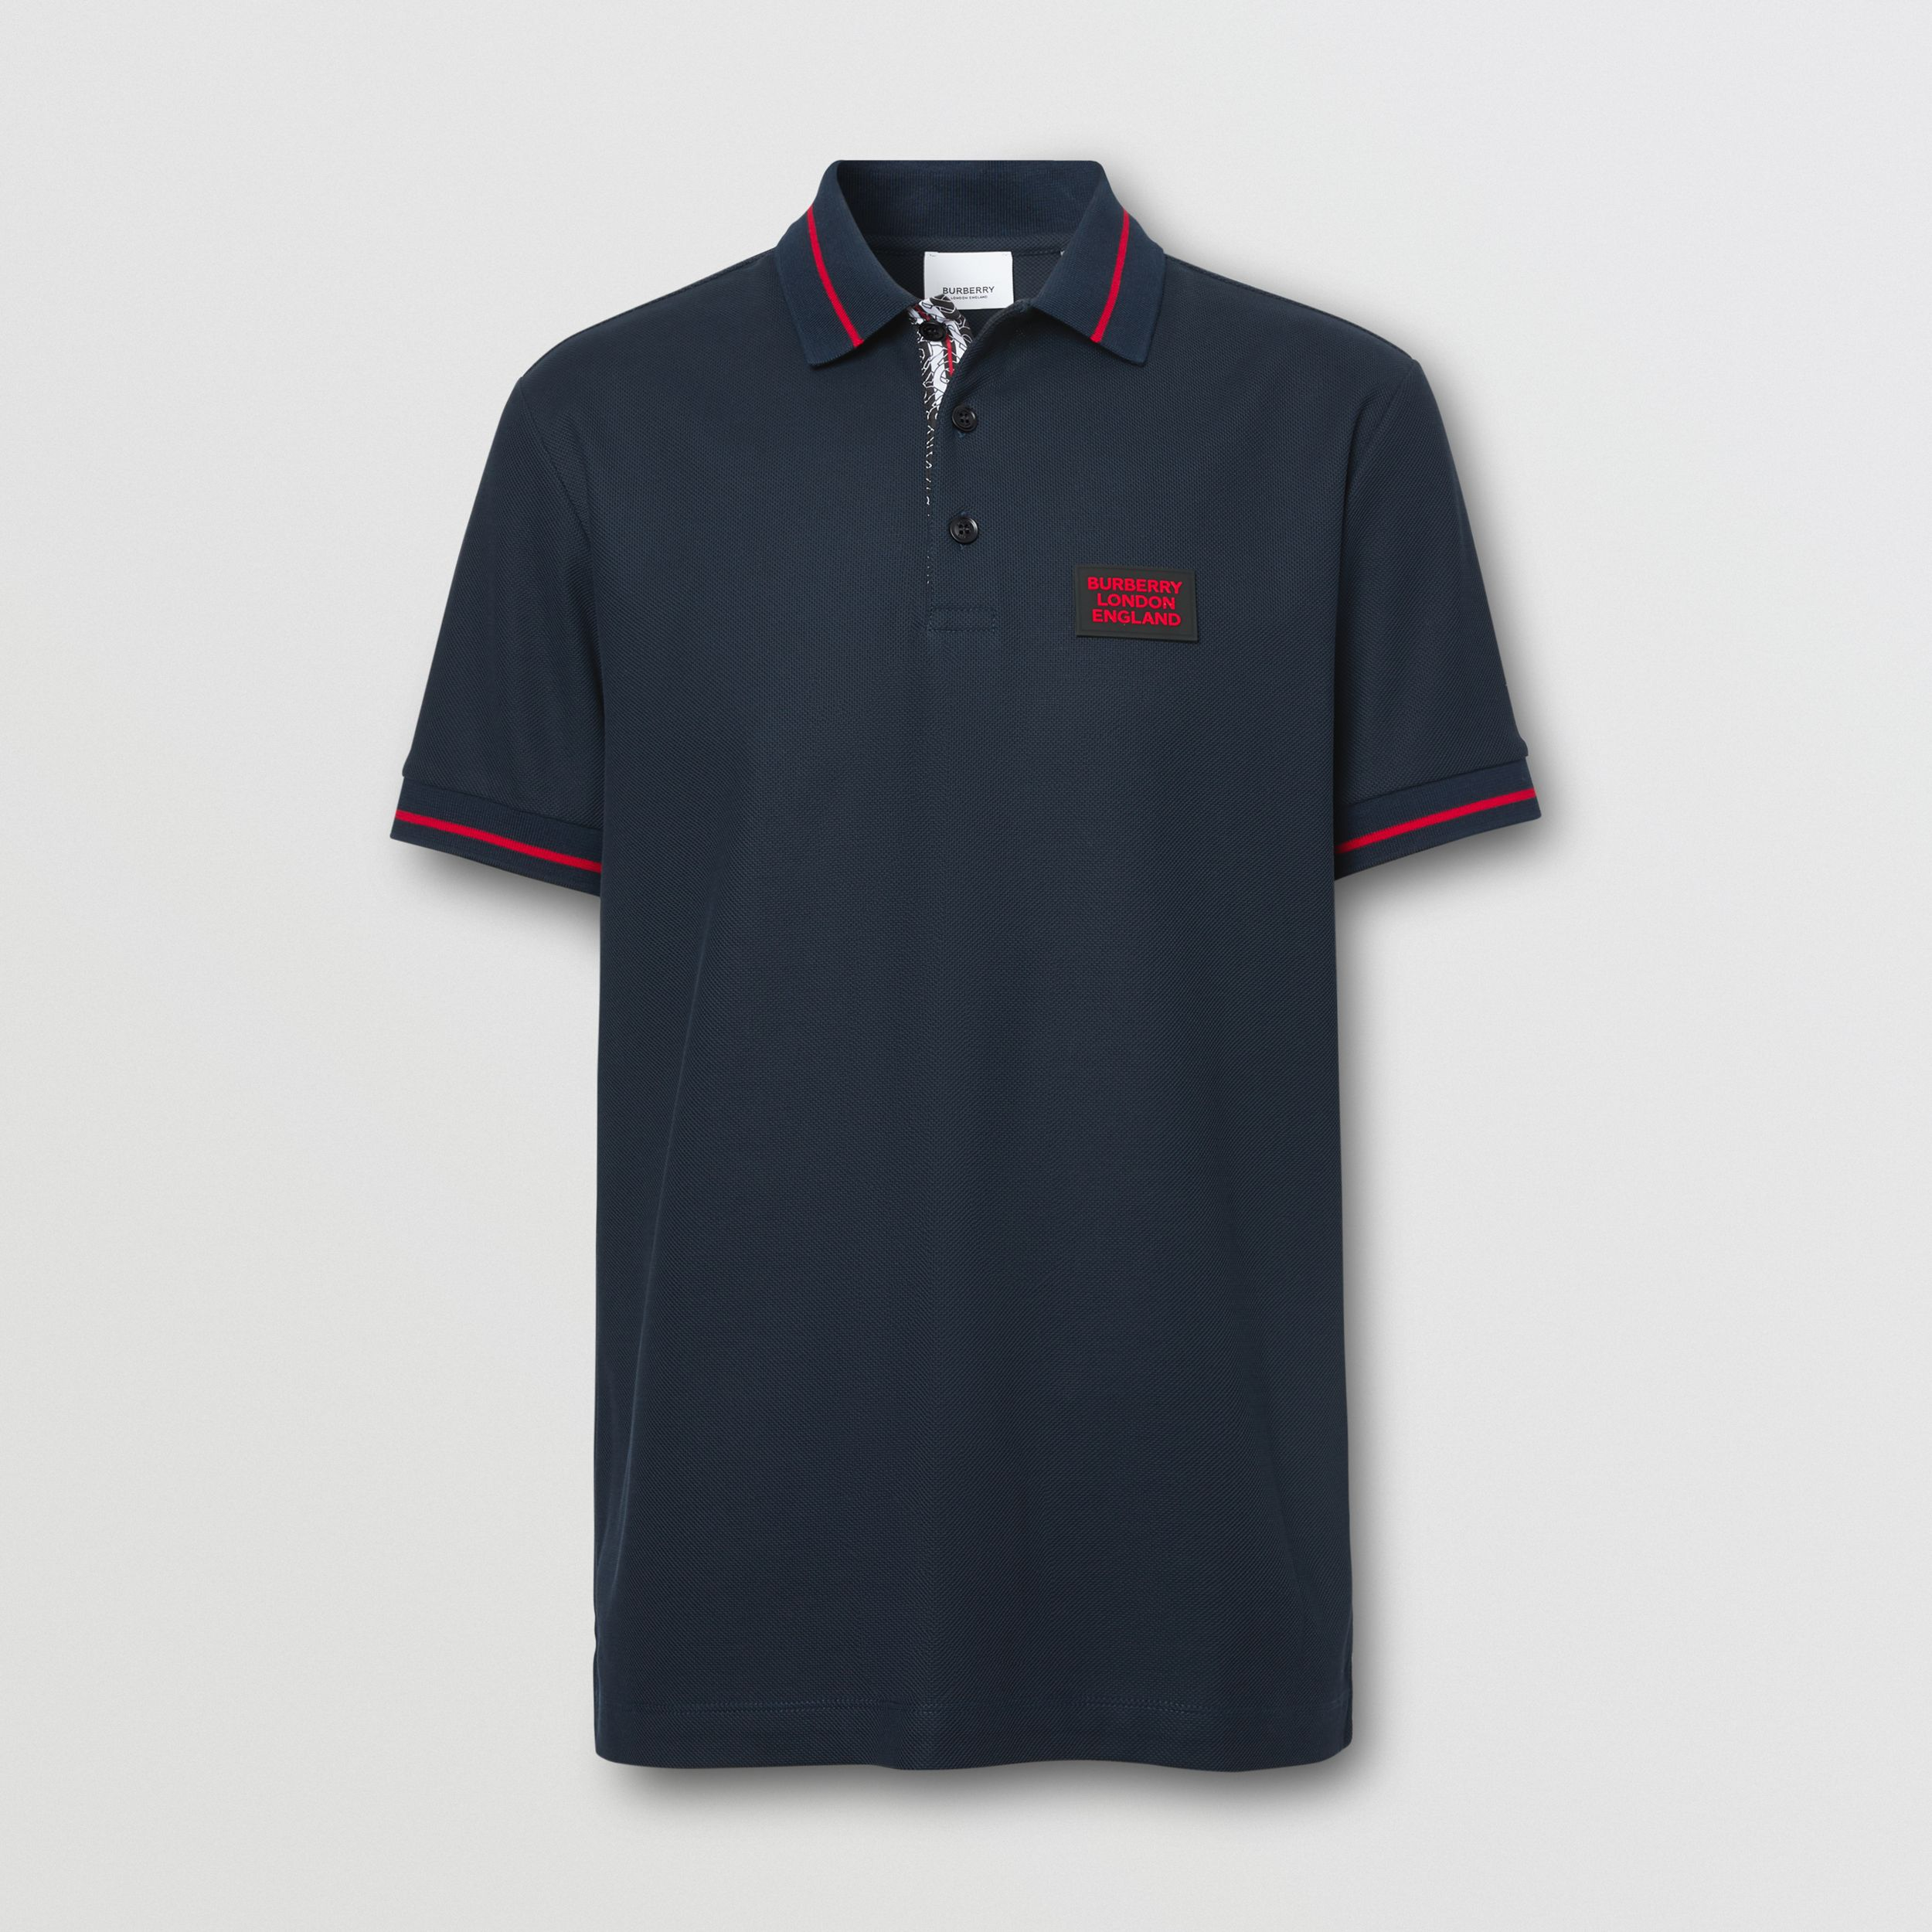 Logo Appliqué Cotton Piqué Polo Shirt in Navy - Men | Burberry - 4